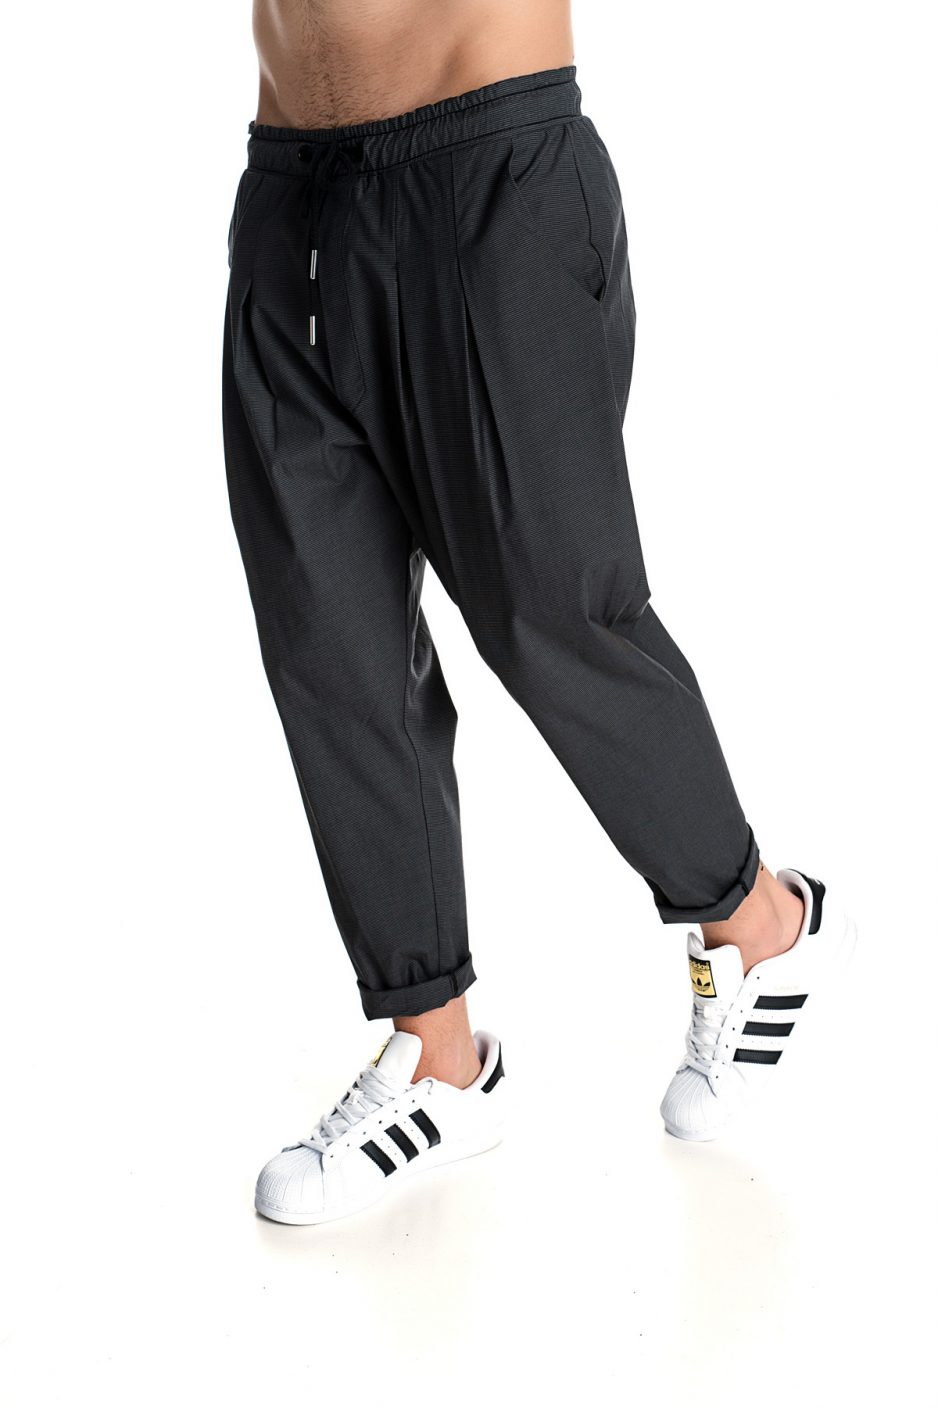 Black P/COC cool trousers with pockets